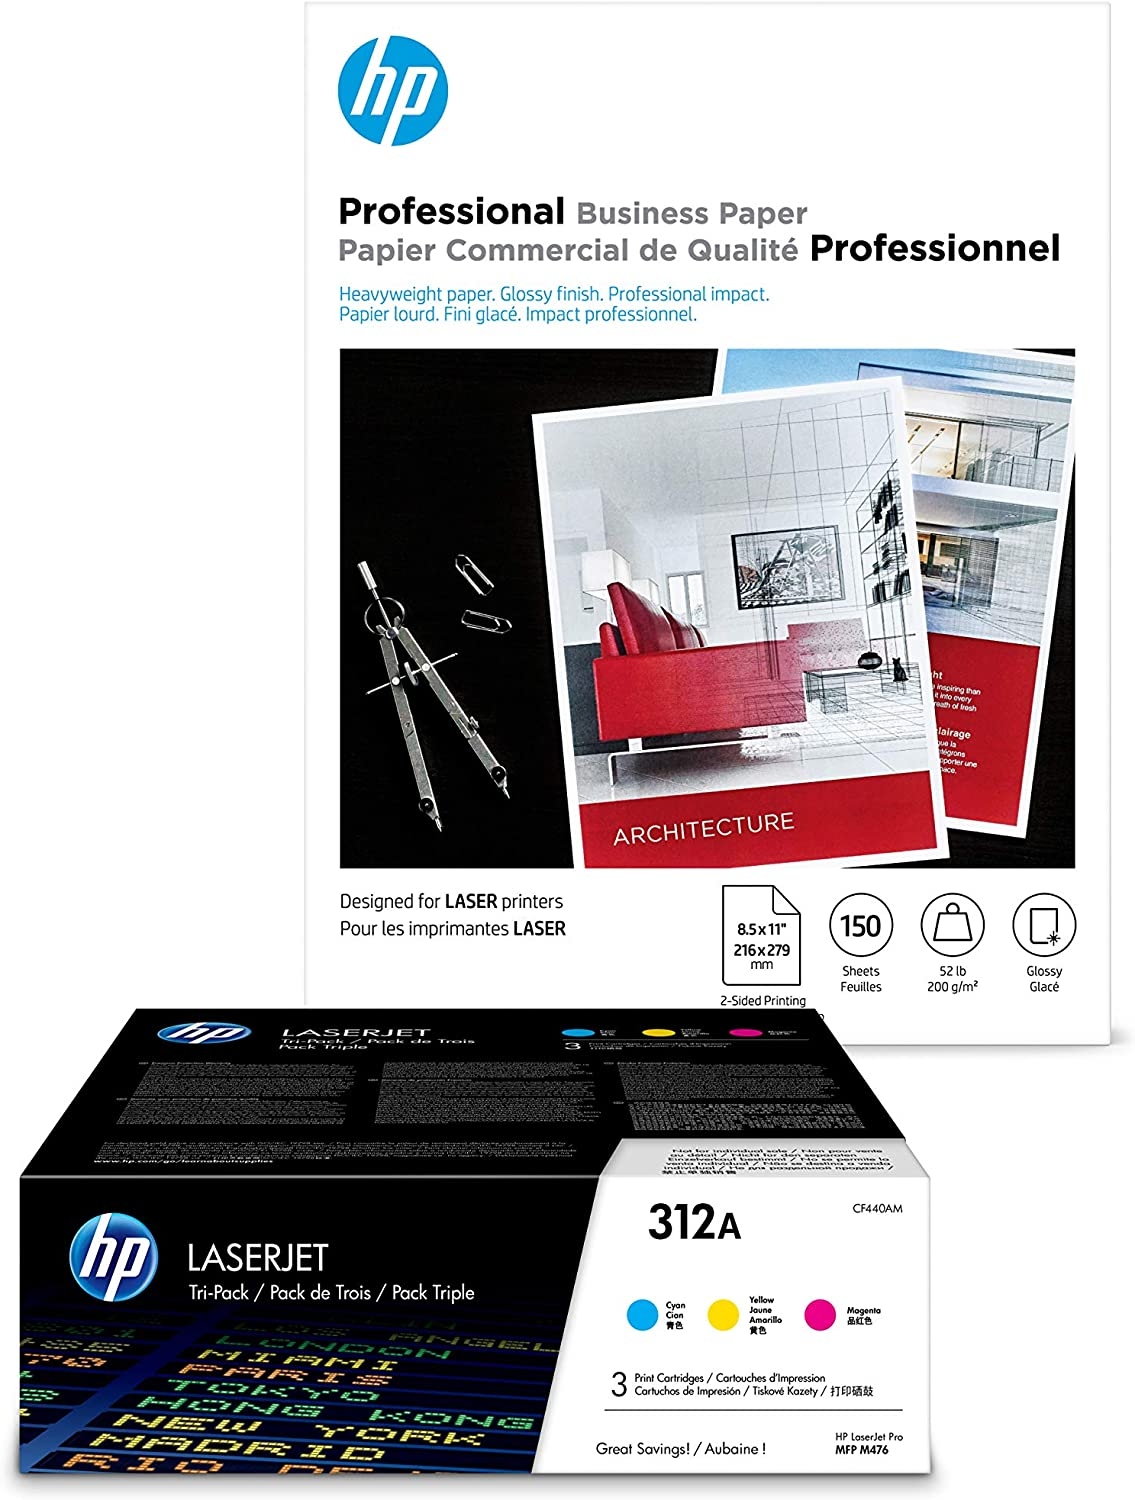 HP 312A 3 Color Toners C,Y,M + HP Brochure Paper, Glossy, Laser, 8.5 x 11, 150 sheets, Professional